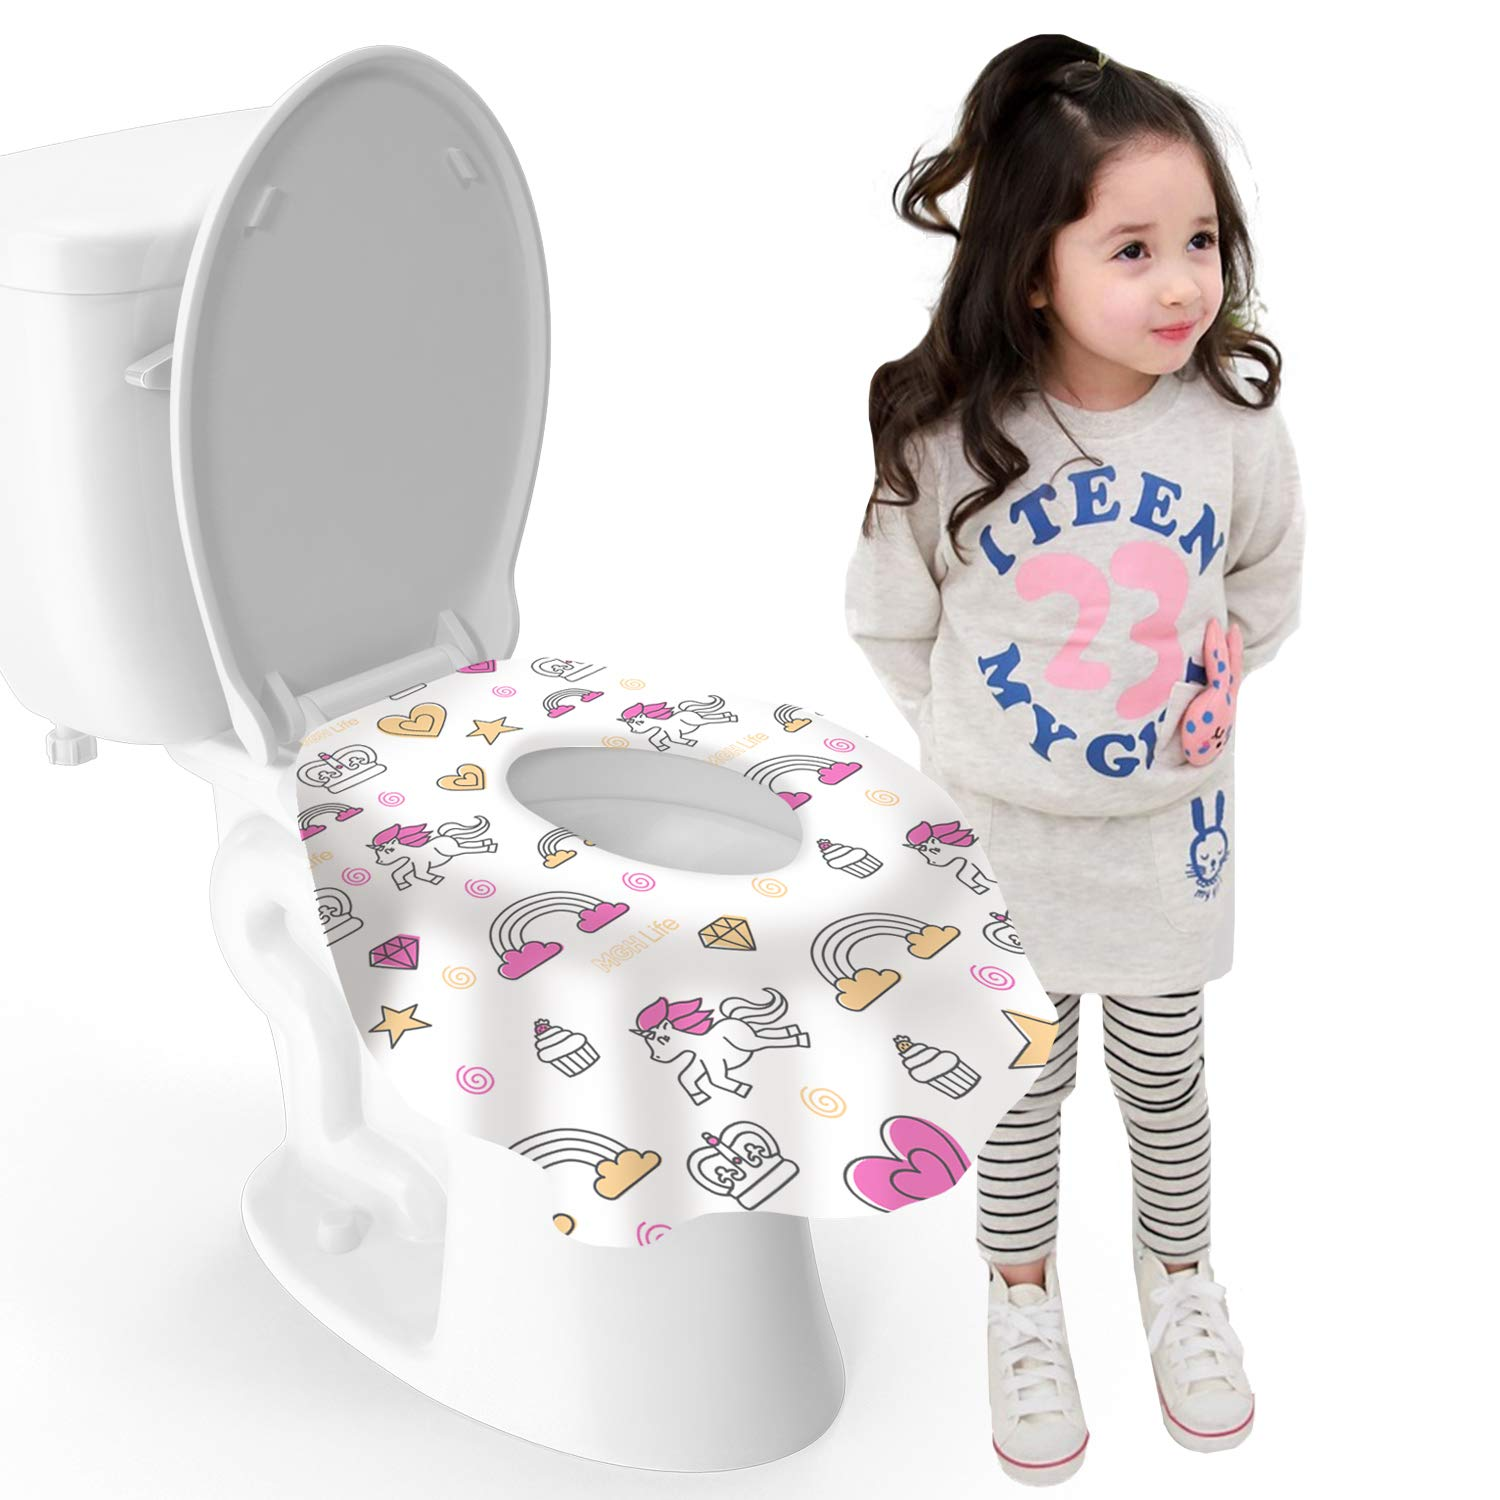 MGH Life XL Large Disposable Travel Toilet Seat Covers - Waterproof, Individually Wrapped Portable Potty Cover That Completely Covers Any Toilet for Kids & Adult (Unicorn Pink/Yellow, Pack of 20)